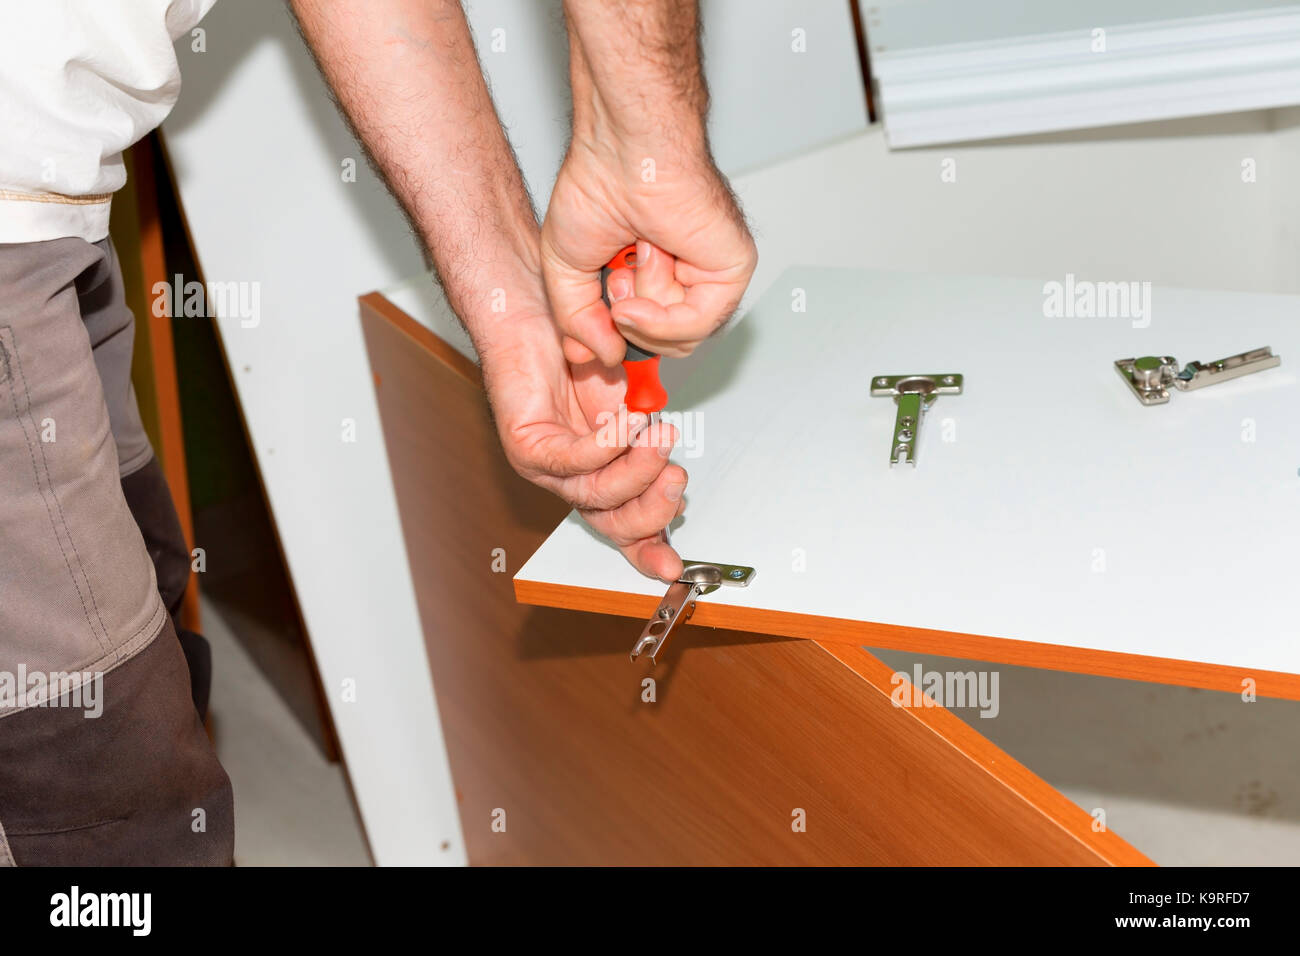 A person screws the hinges on a newly purchased wardrobe. - Stock Image